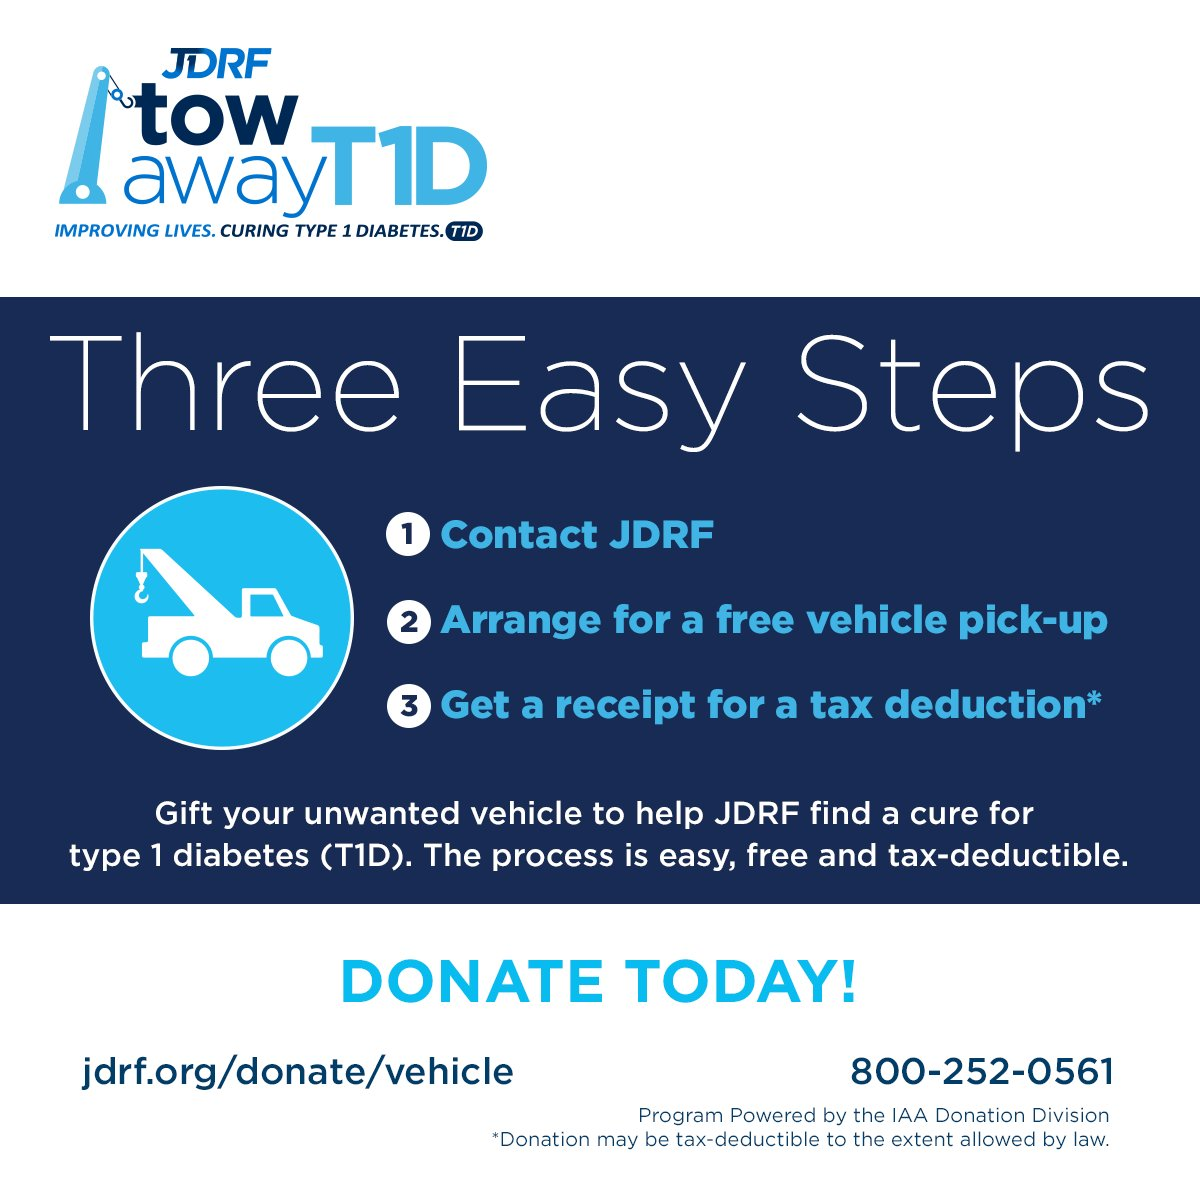 e16da4977 Not only will your donation help fund T1D research, AND it also may be  tax-deductible! #TowAwayT1Dpic.twitter.com/JpKqUZwaM9